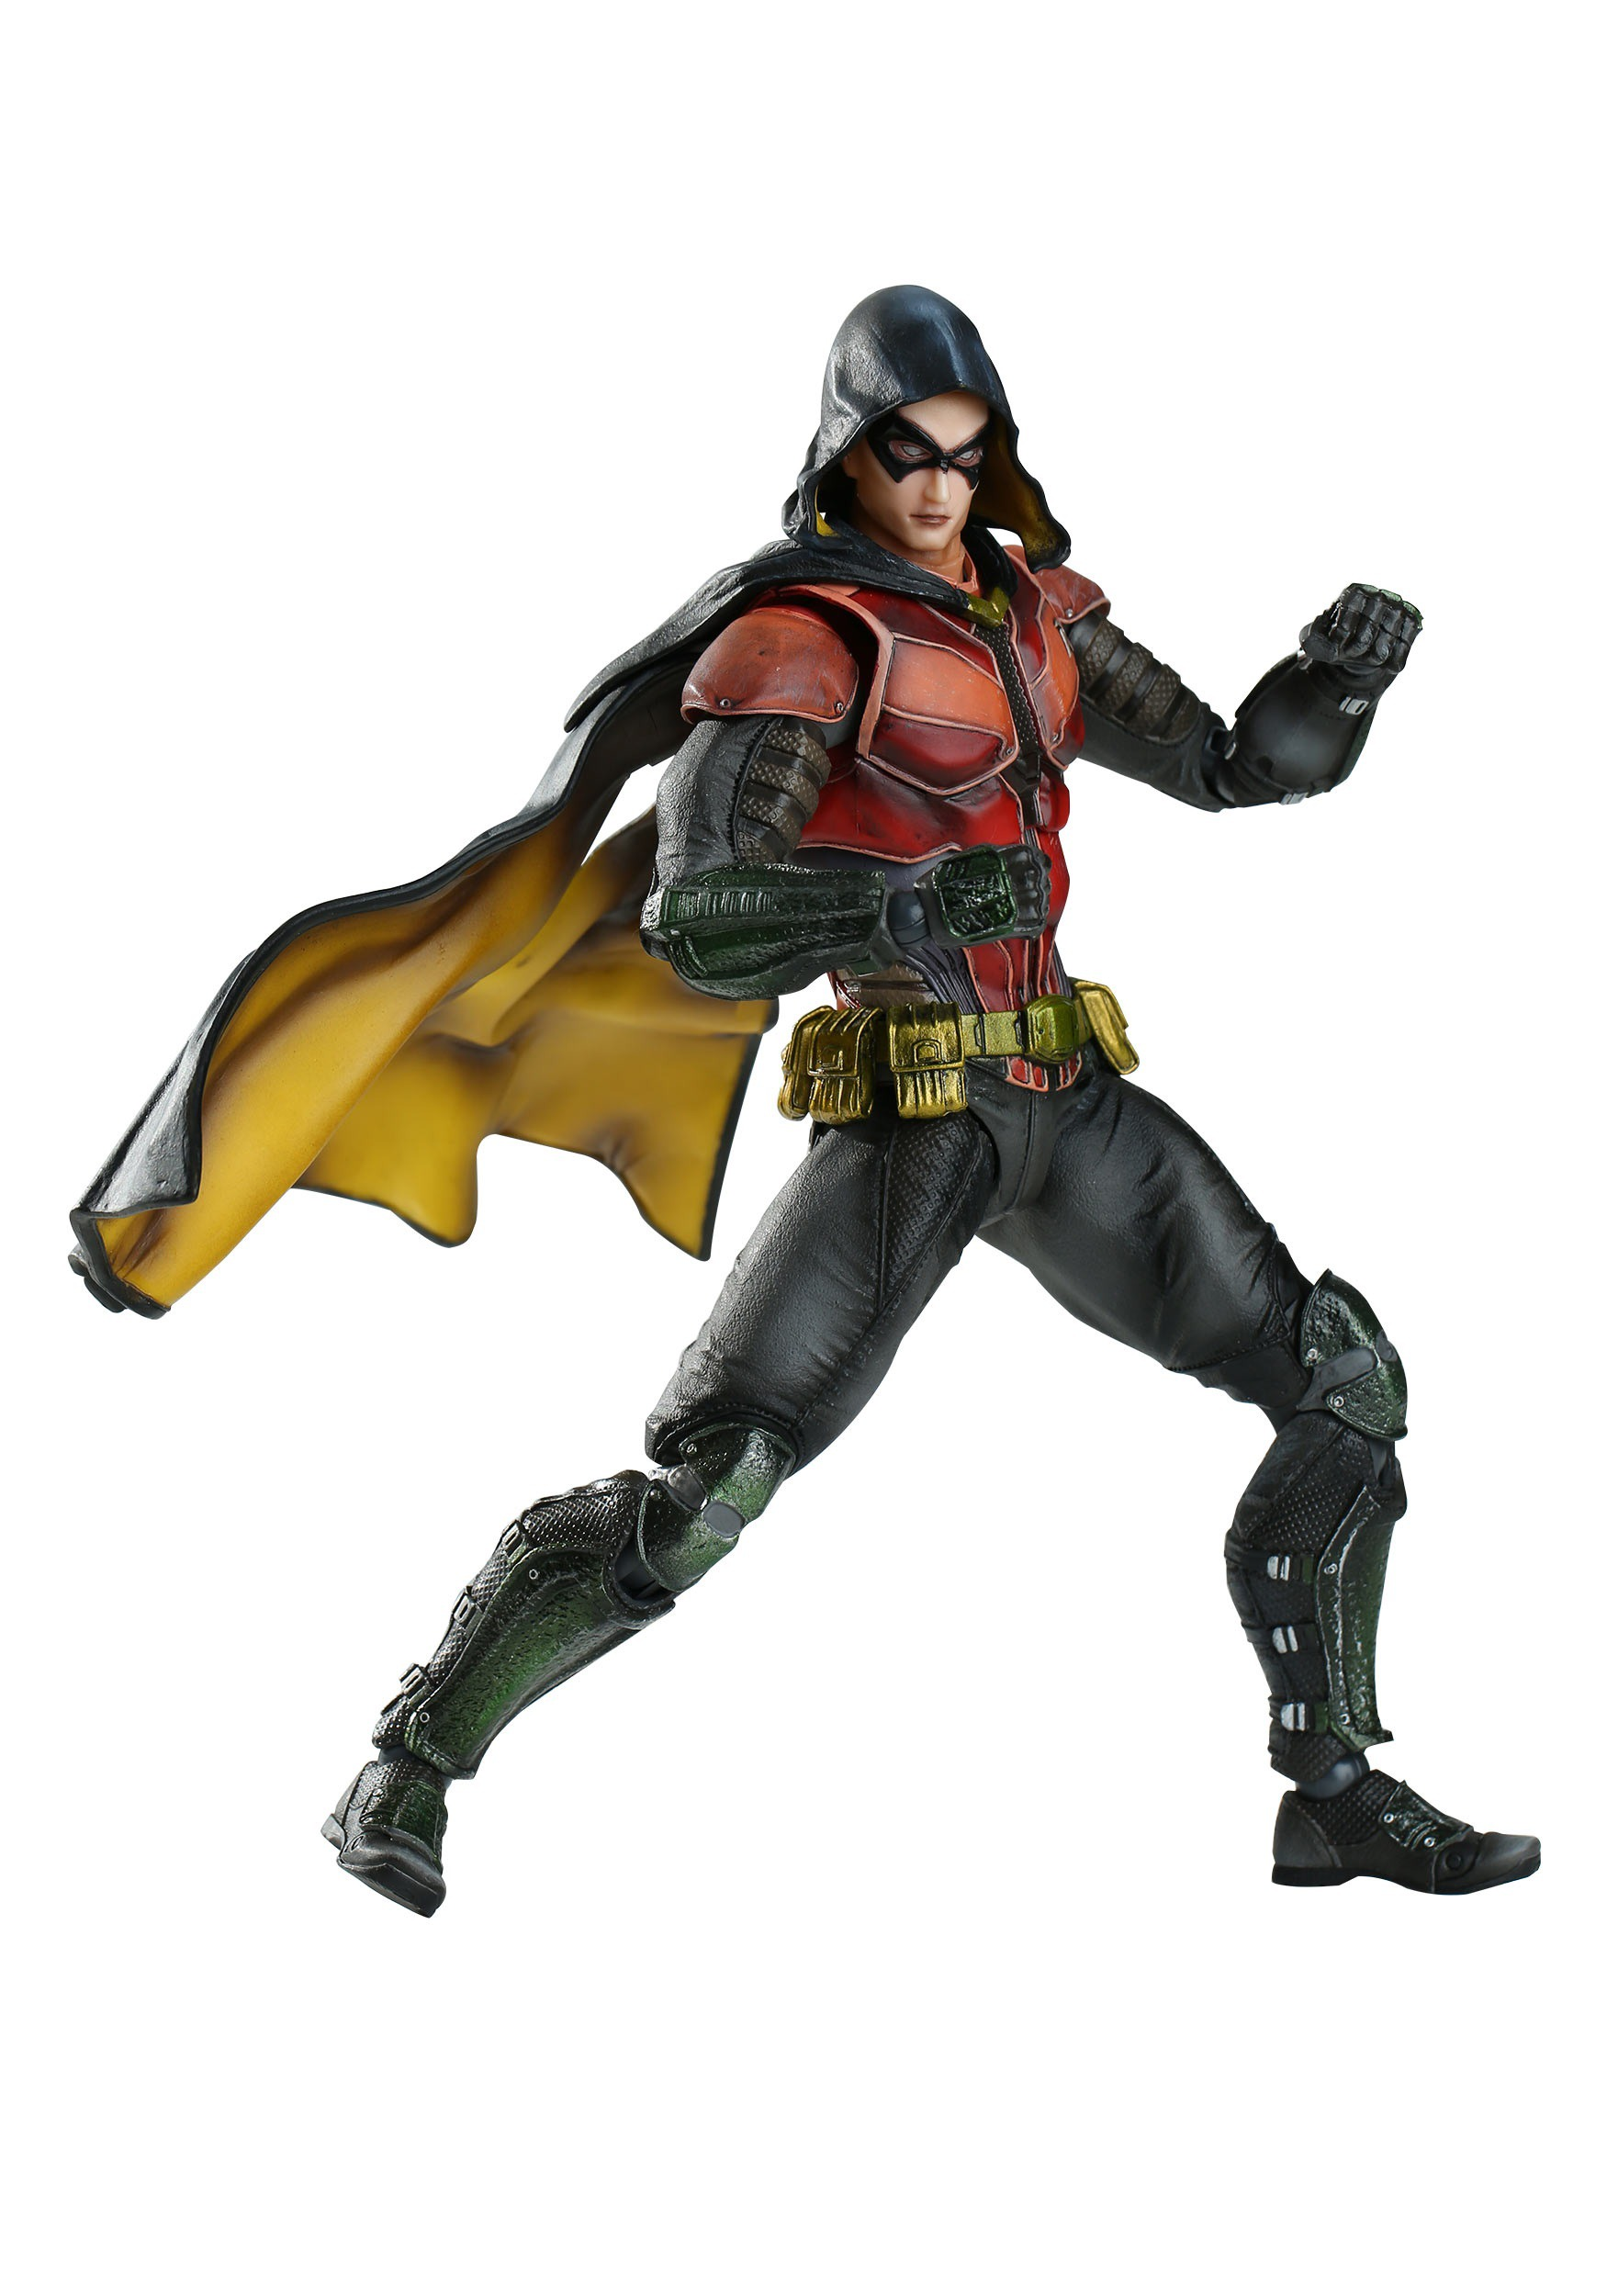 Square Enix Play Arts Kai Robin Arkham Knight Figure BFDENX32214